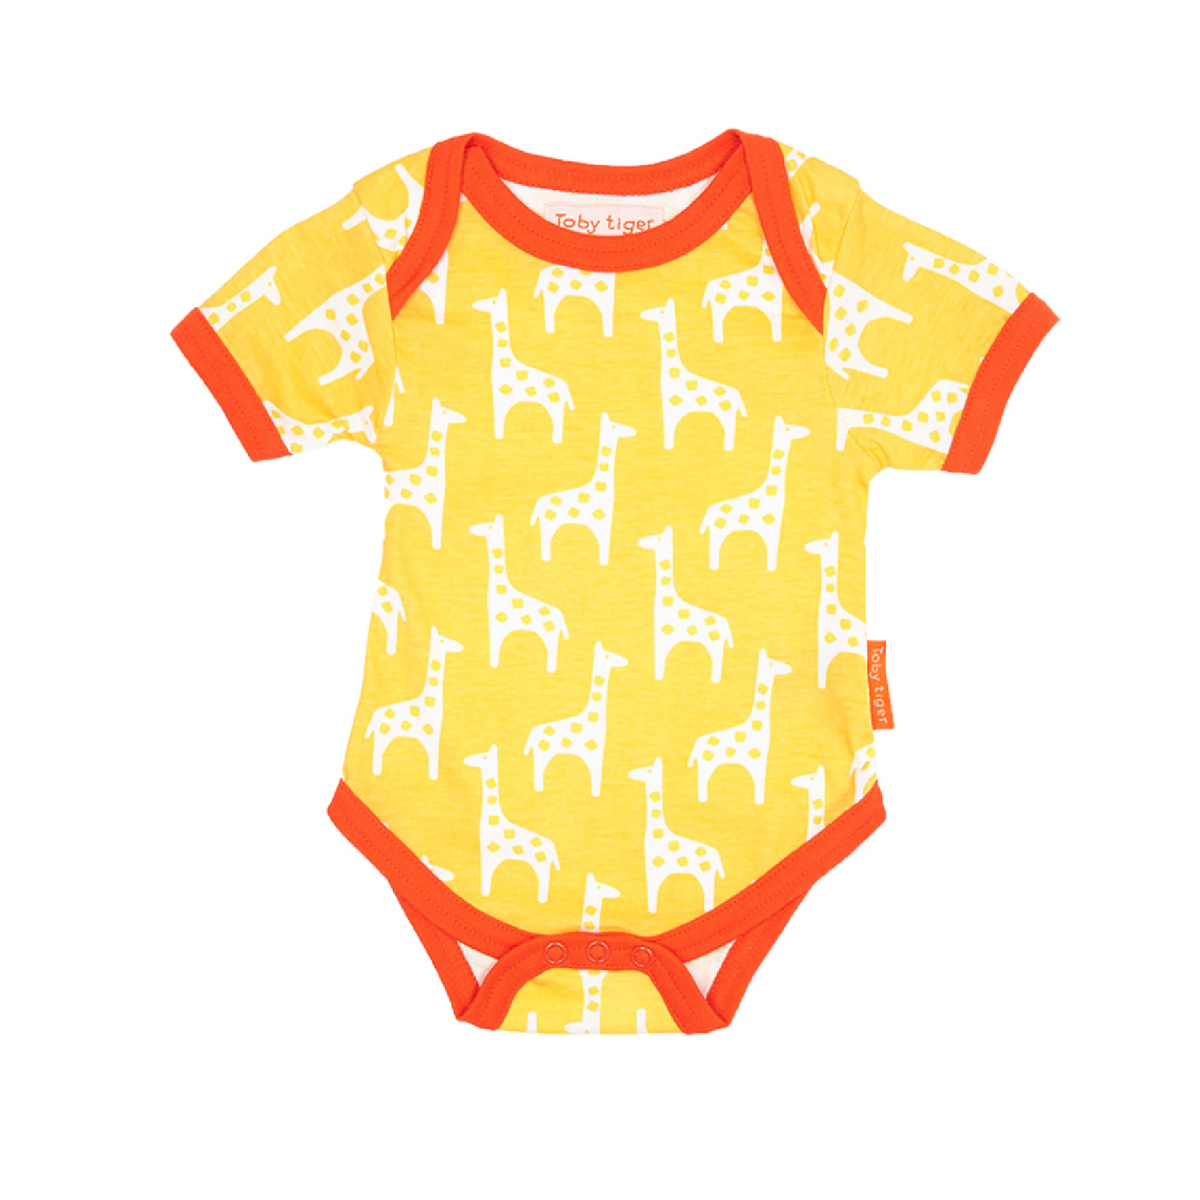 Giraffe Organic Cotton Baby Bodies 2 Pack